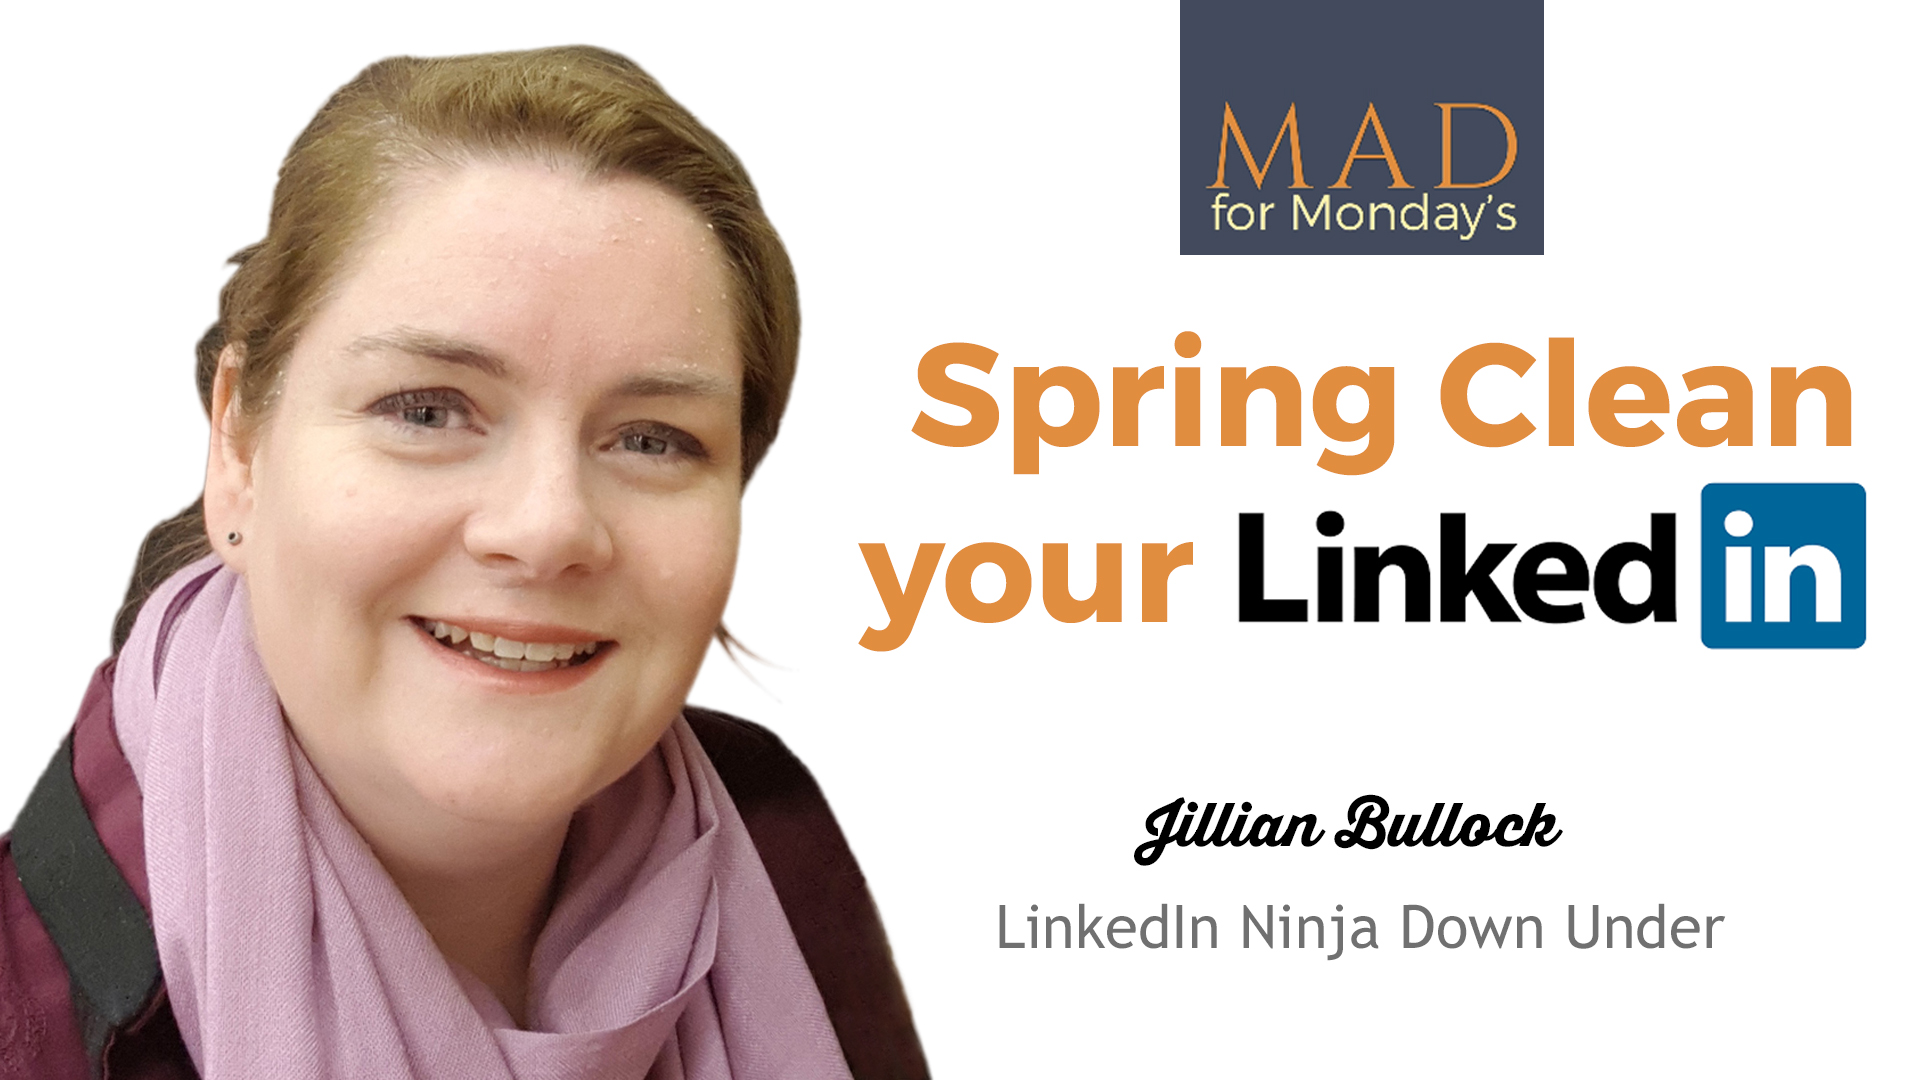 M.A.D. (Make a Difference) for Monday's – Spring Clean your LinkedIn